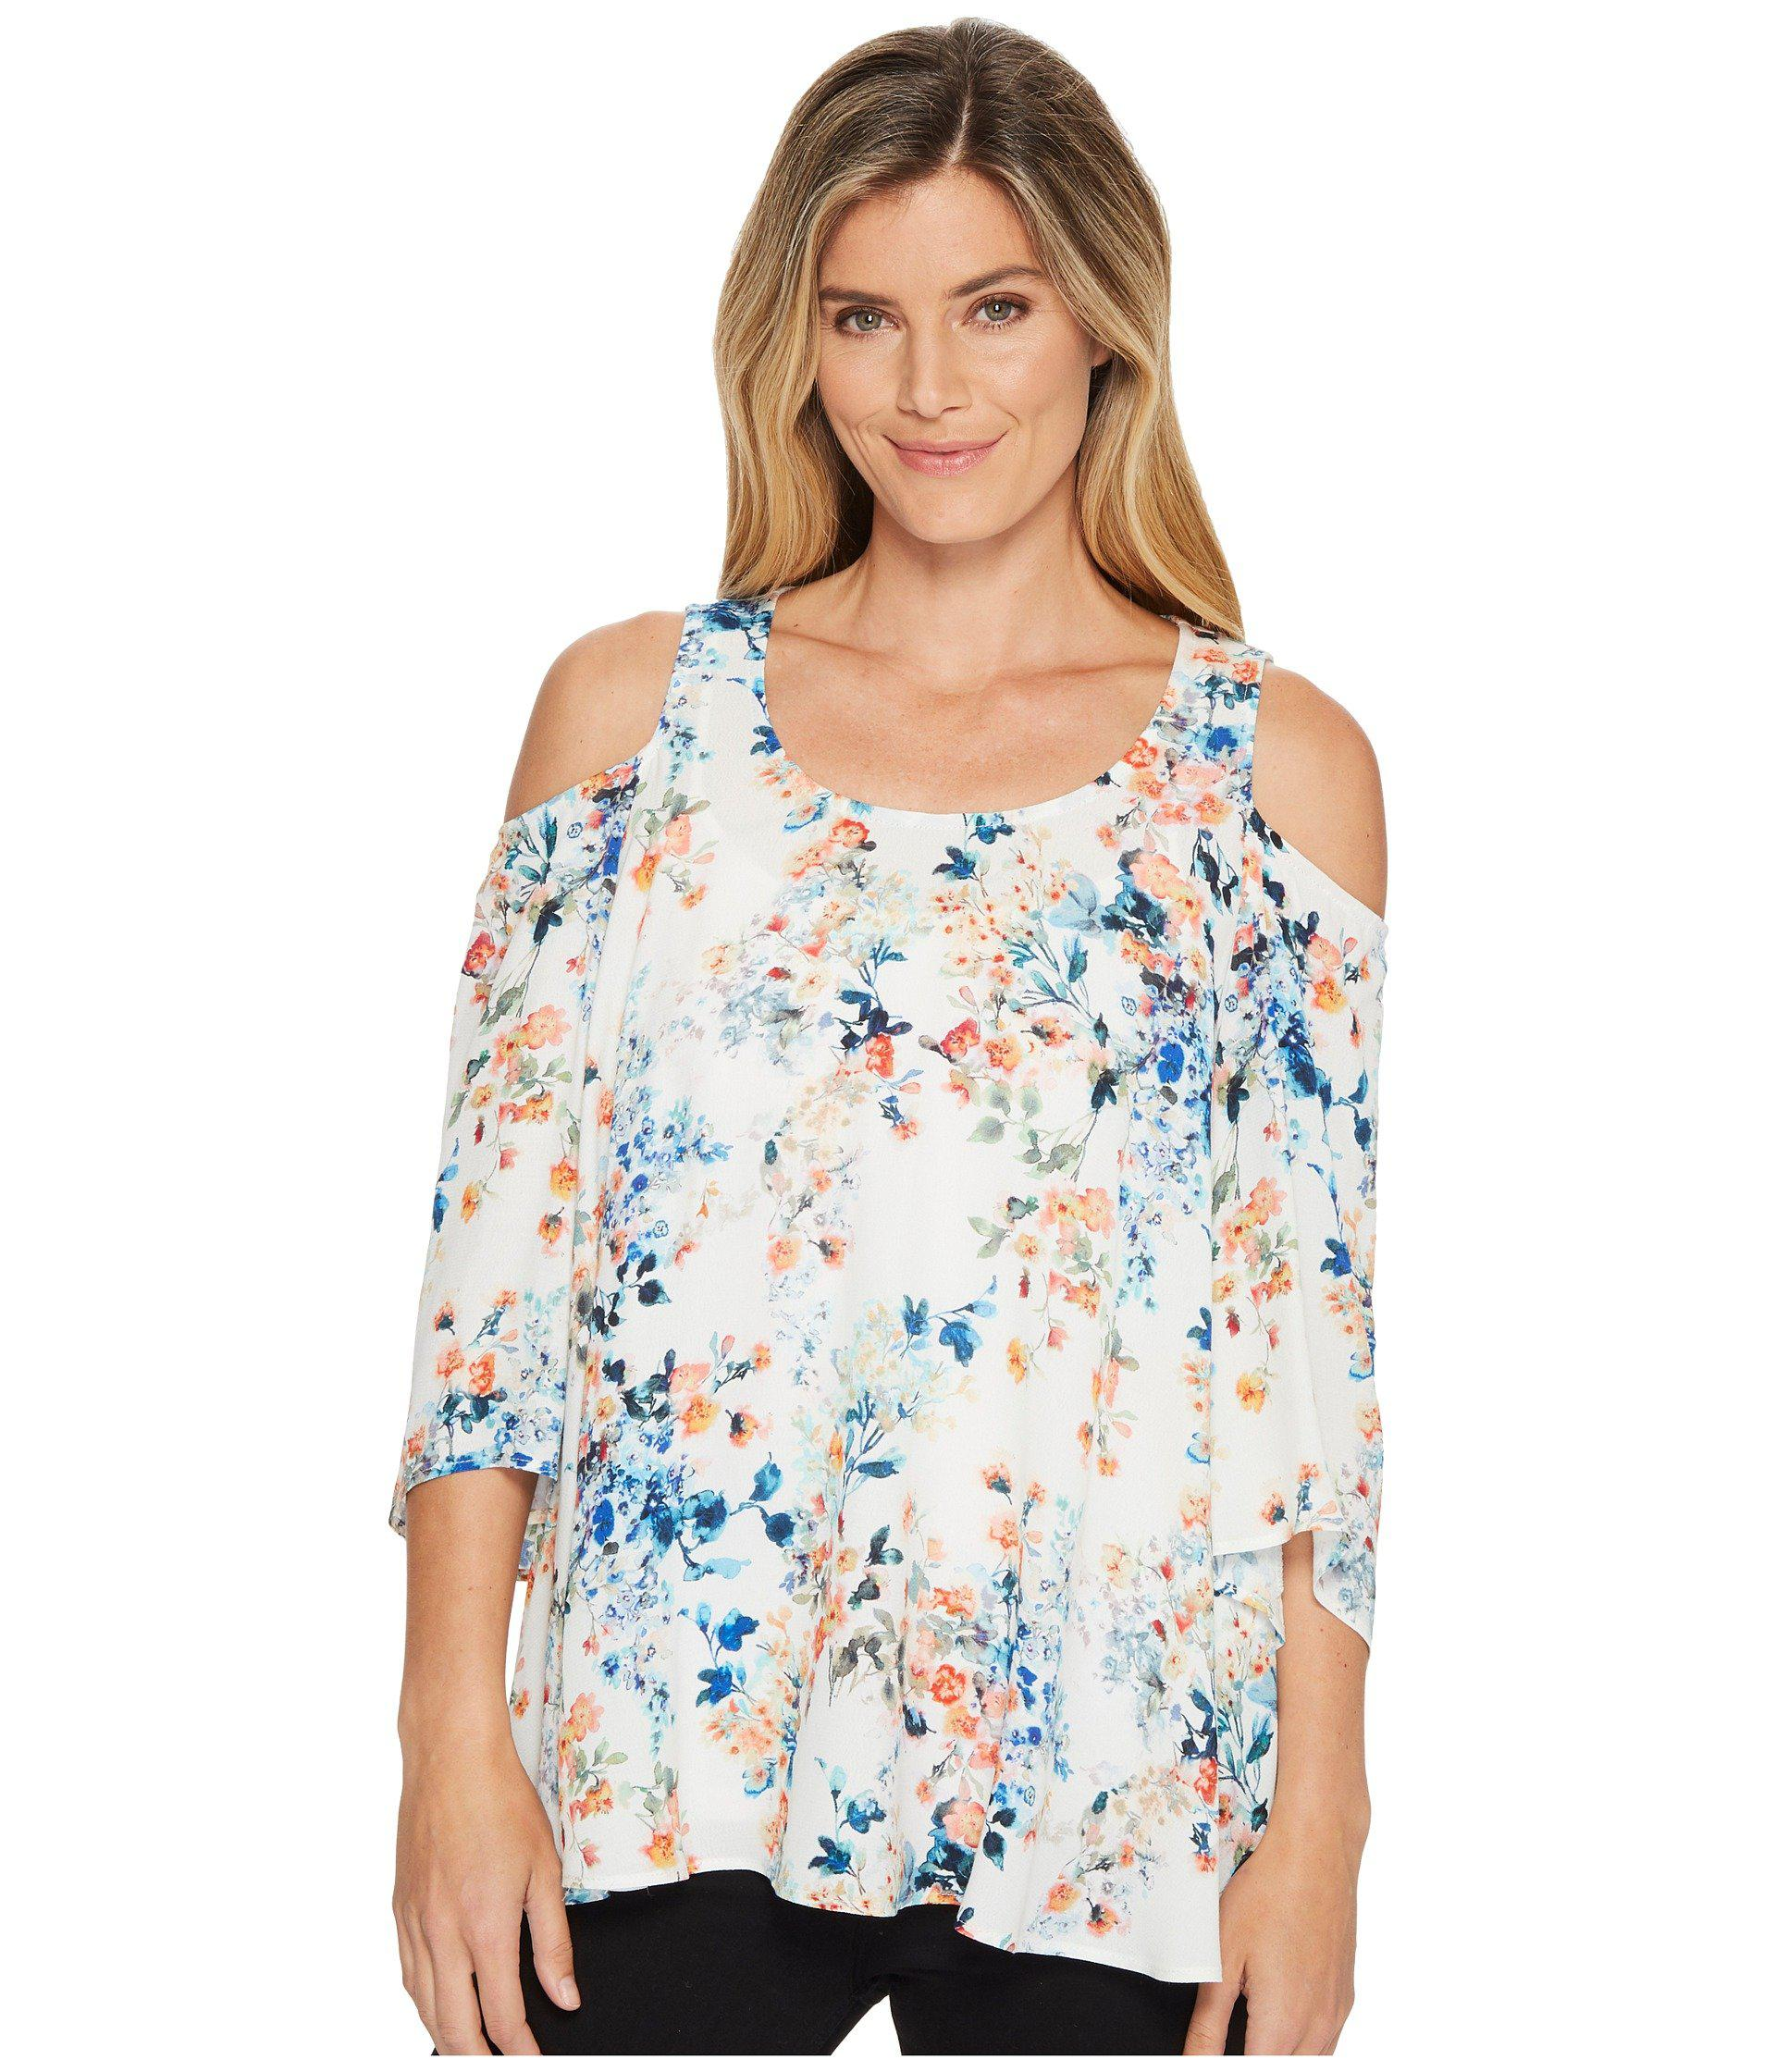 93333b7f6396a Lyst - Karen Kane Cold Shoulder Flare Sleeve Top in Blue - Save 49%